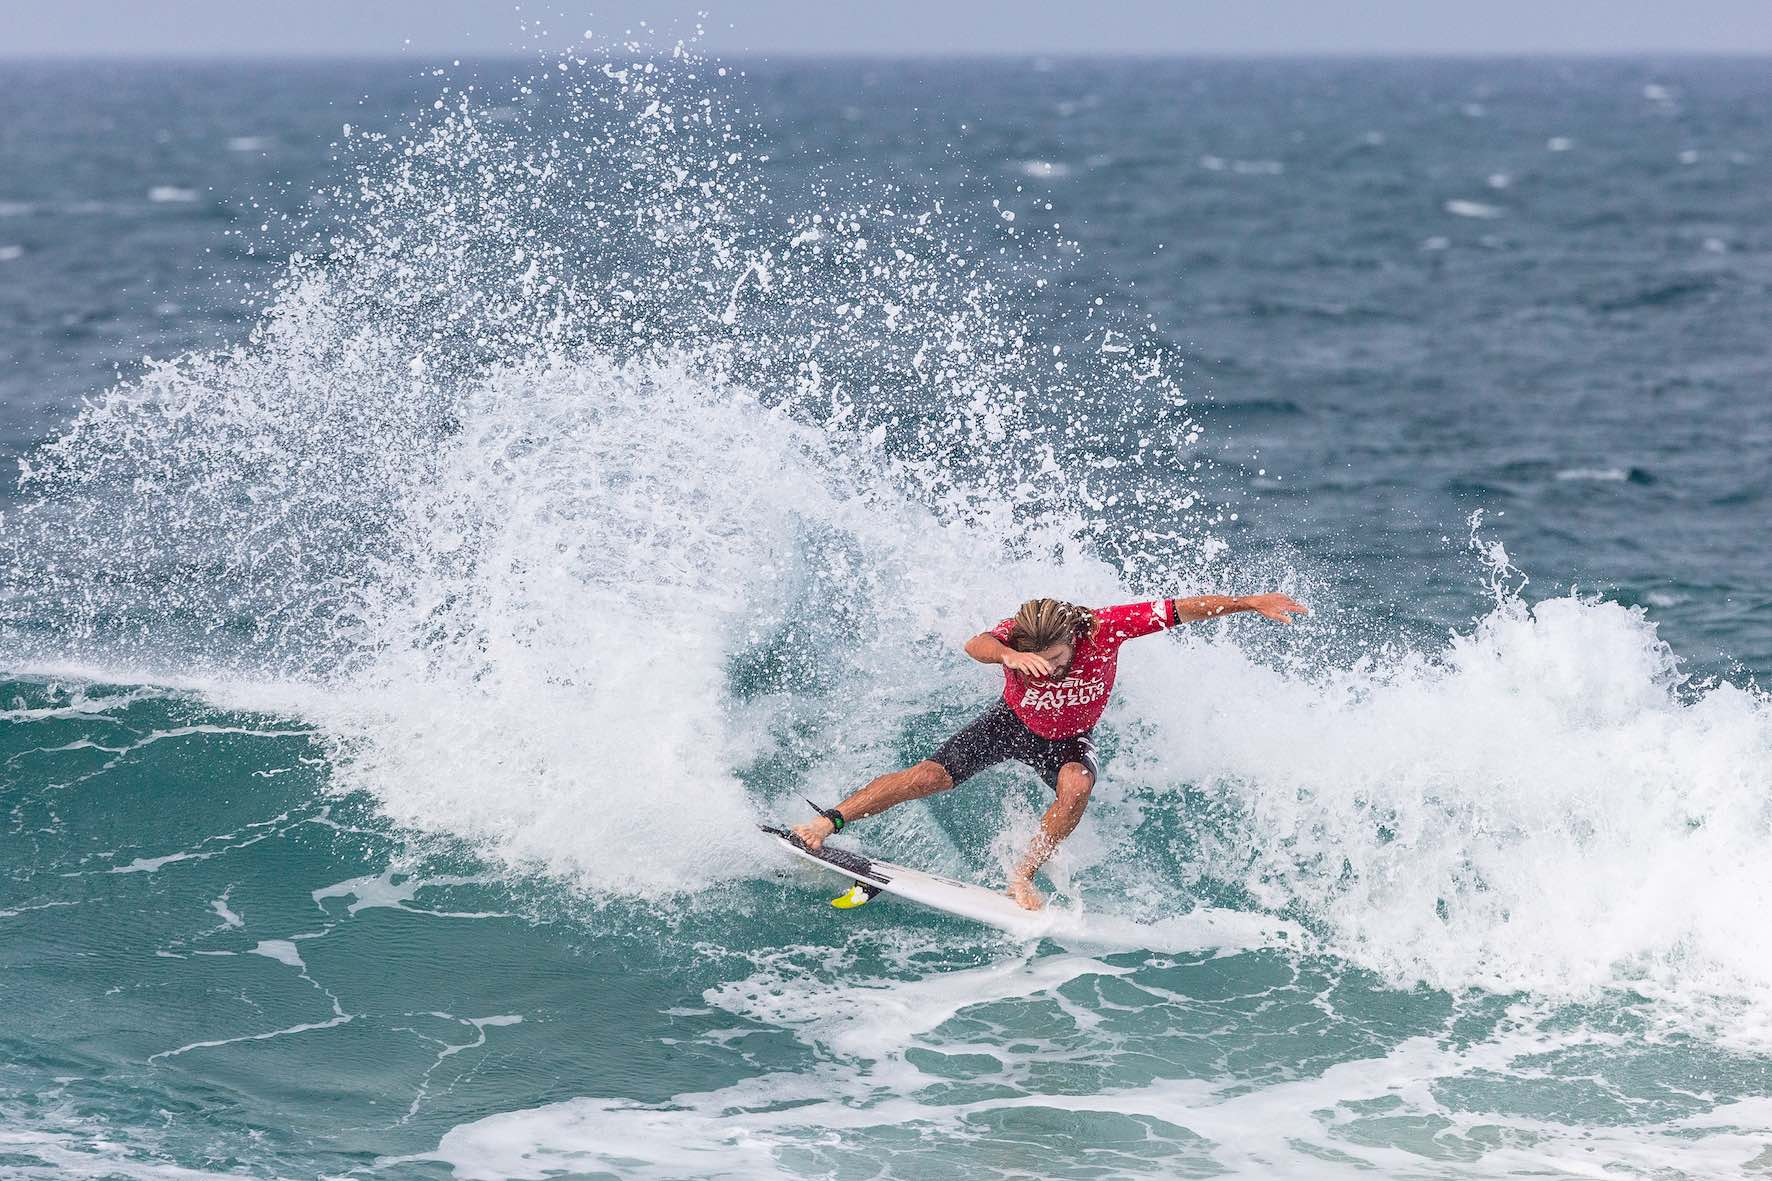 Wade Carmichael surfing in the 2019 Ballito Pro